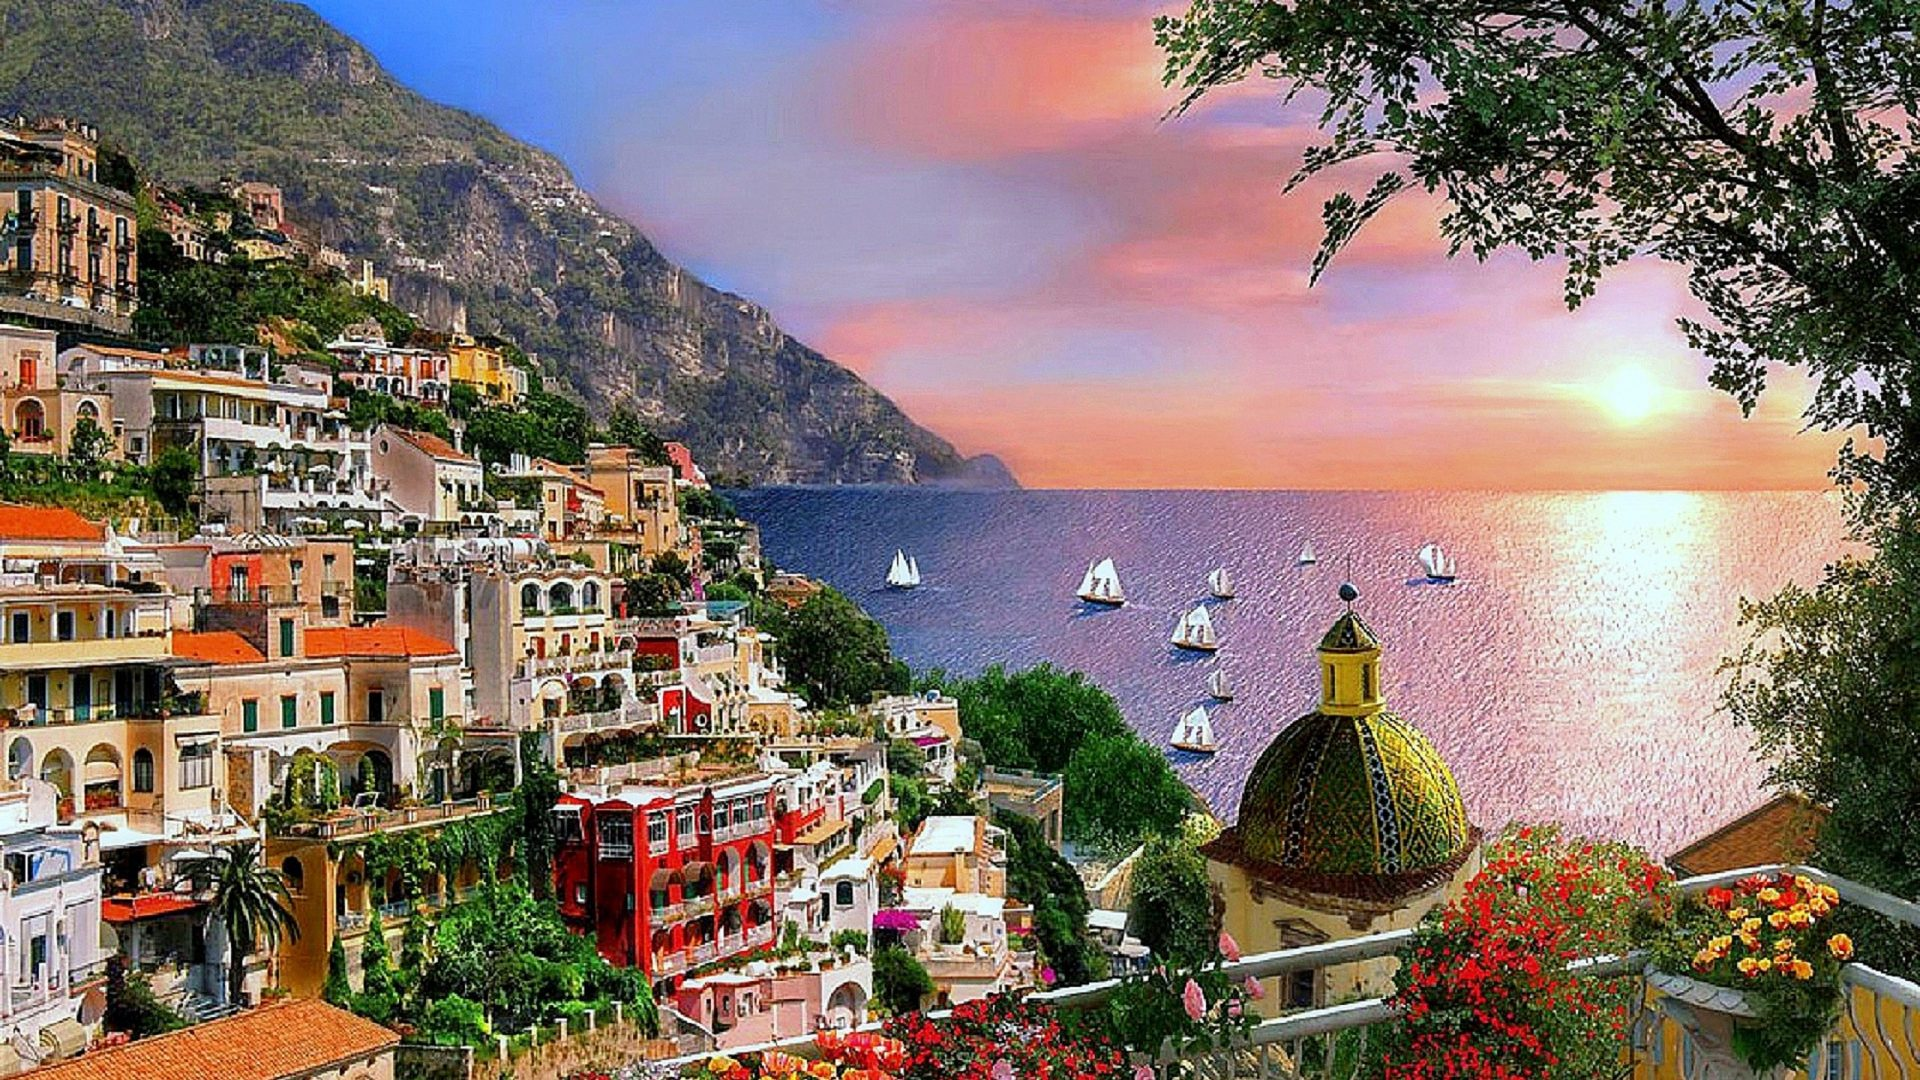 houses-positano-places-photography-sunsets-coast-love-seasons-weather-flowers-attractions-dreams-cit